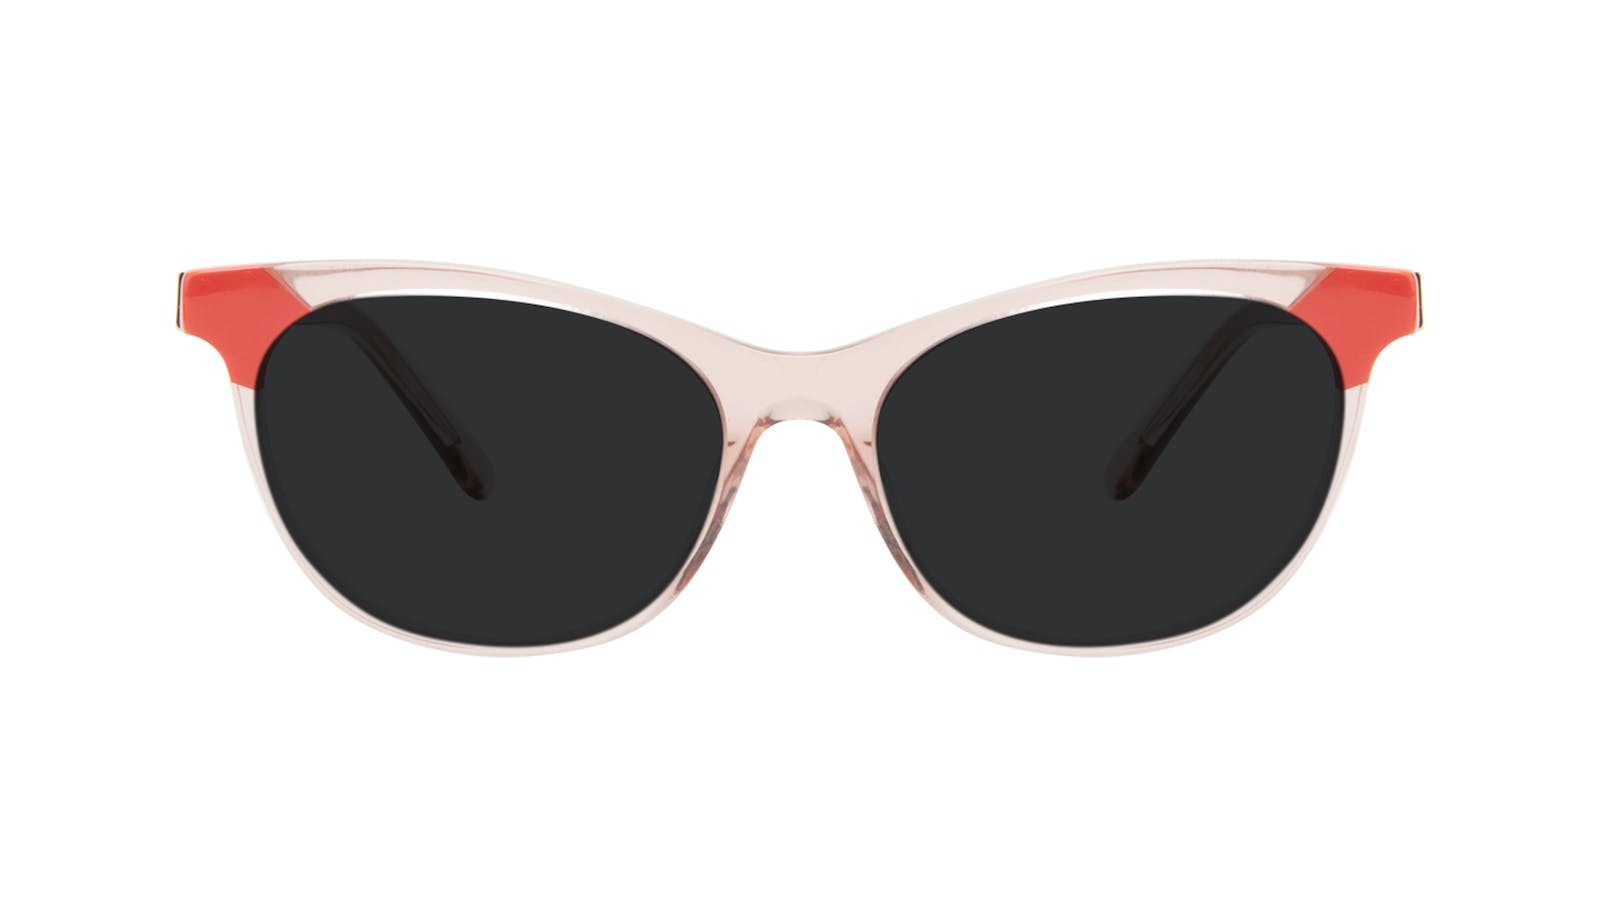 416a95fcea Affordable Fashion Glasses Cat Eye Sunglasses Women Witty Pink Coral